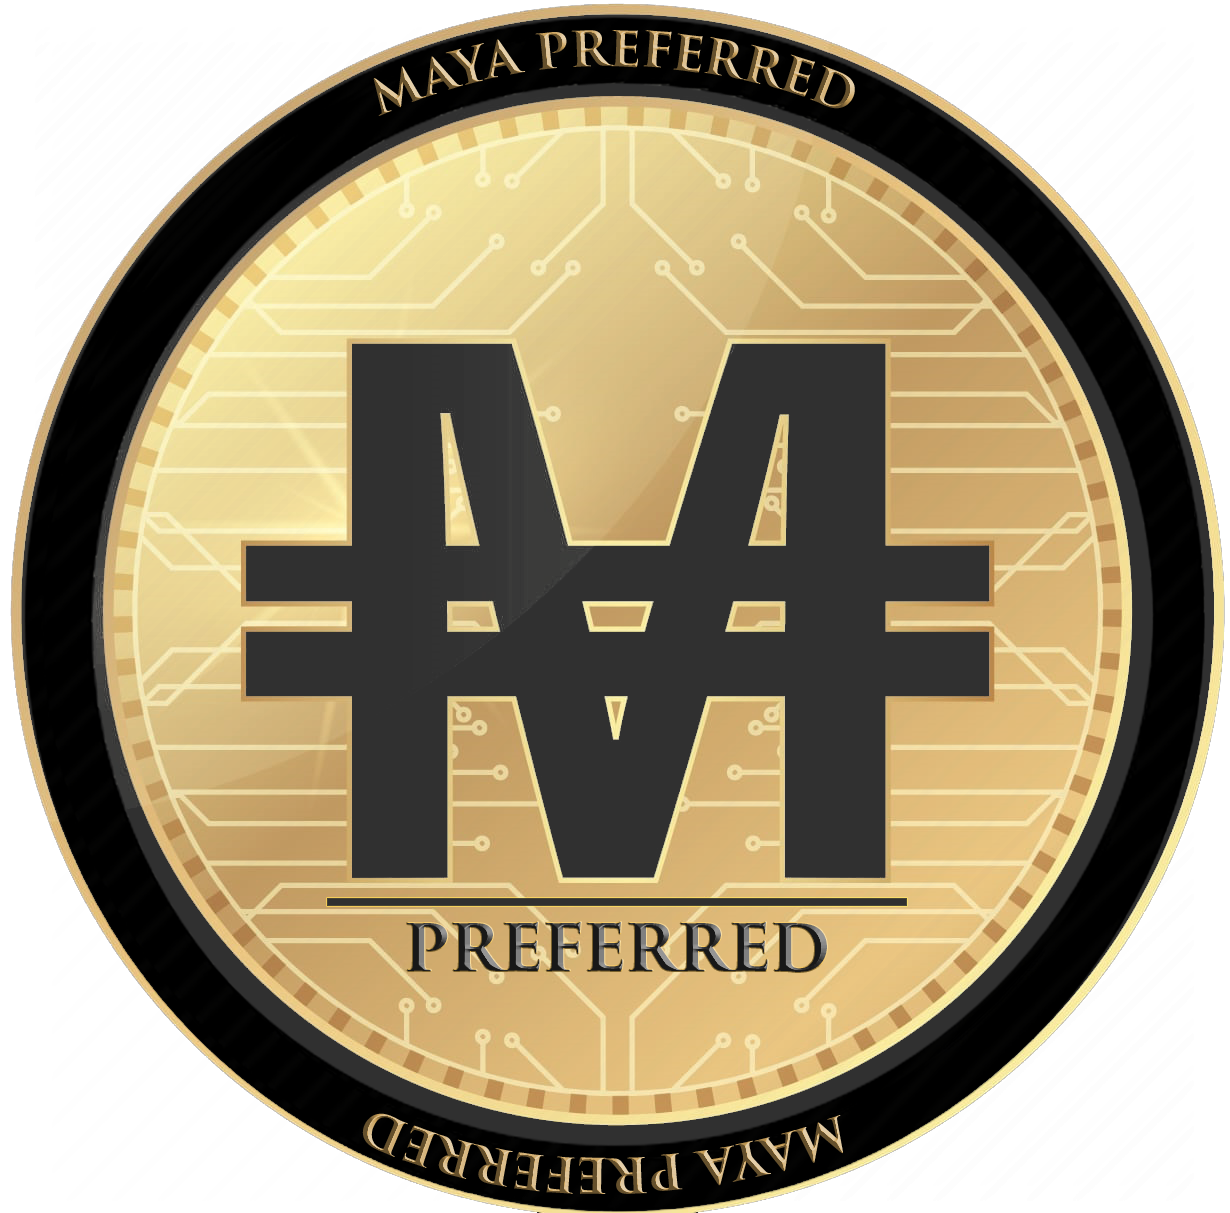 Why buy Maya Preferred 223 (MAPR)? It\\\'s backing Bitcoin with Gold and Silver, That\\\'s why.